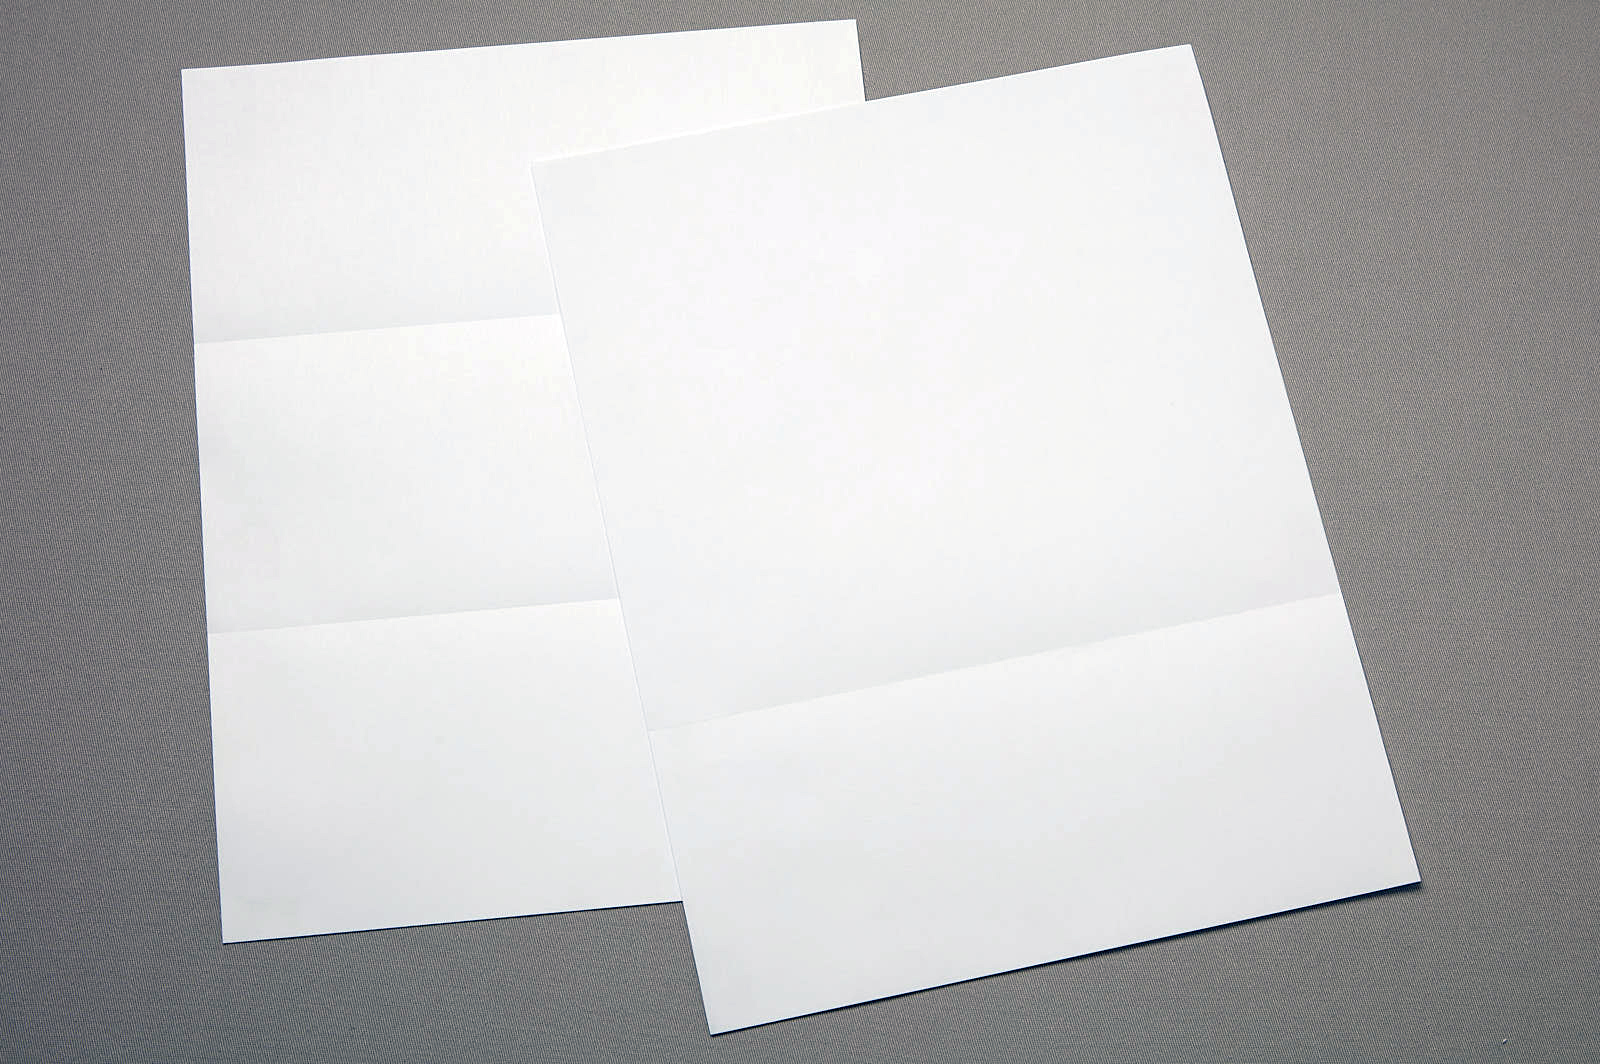 Blank Perforated Paper